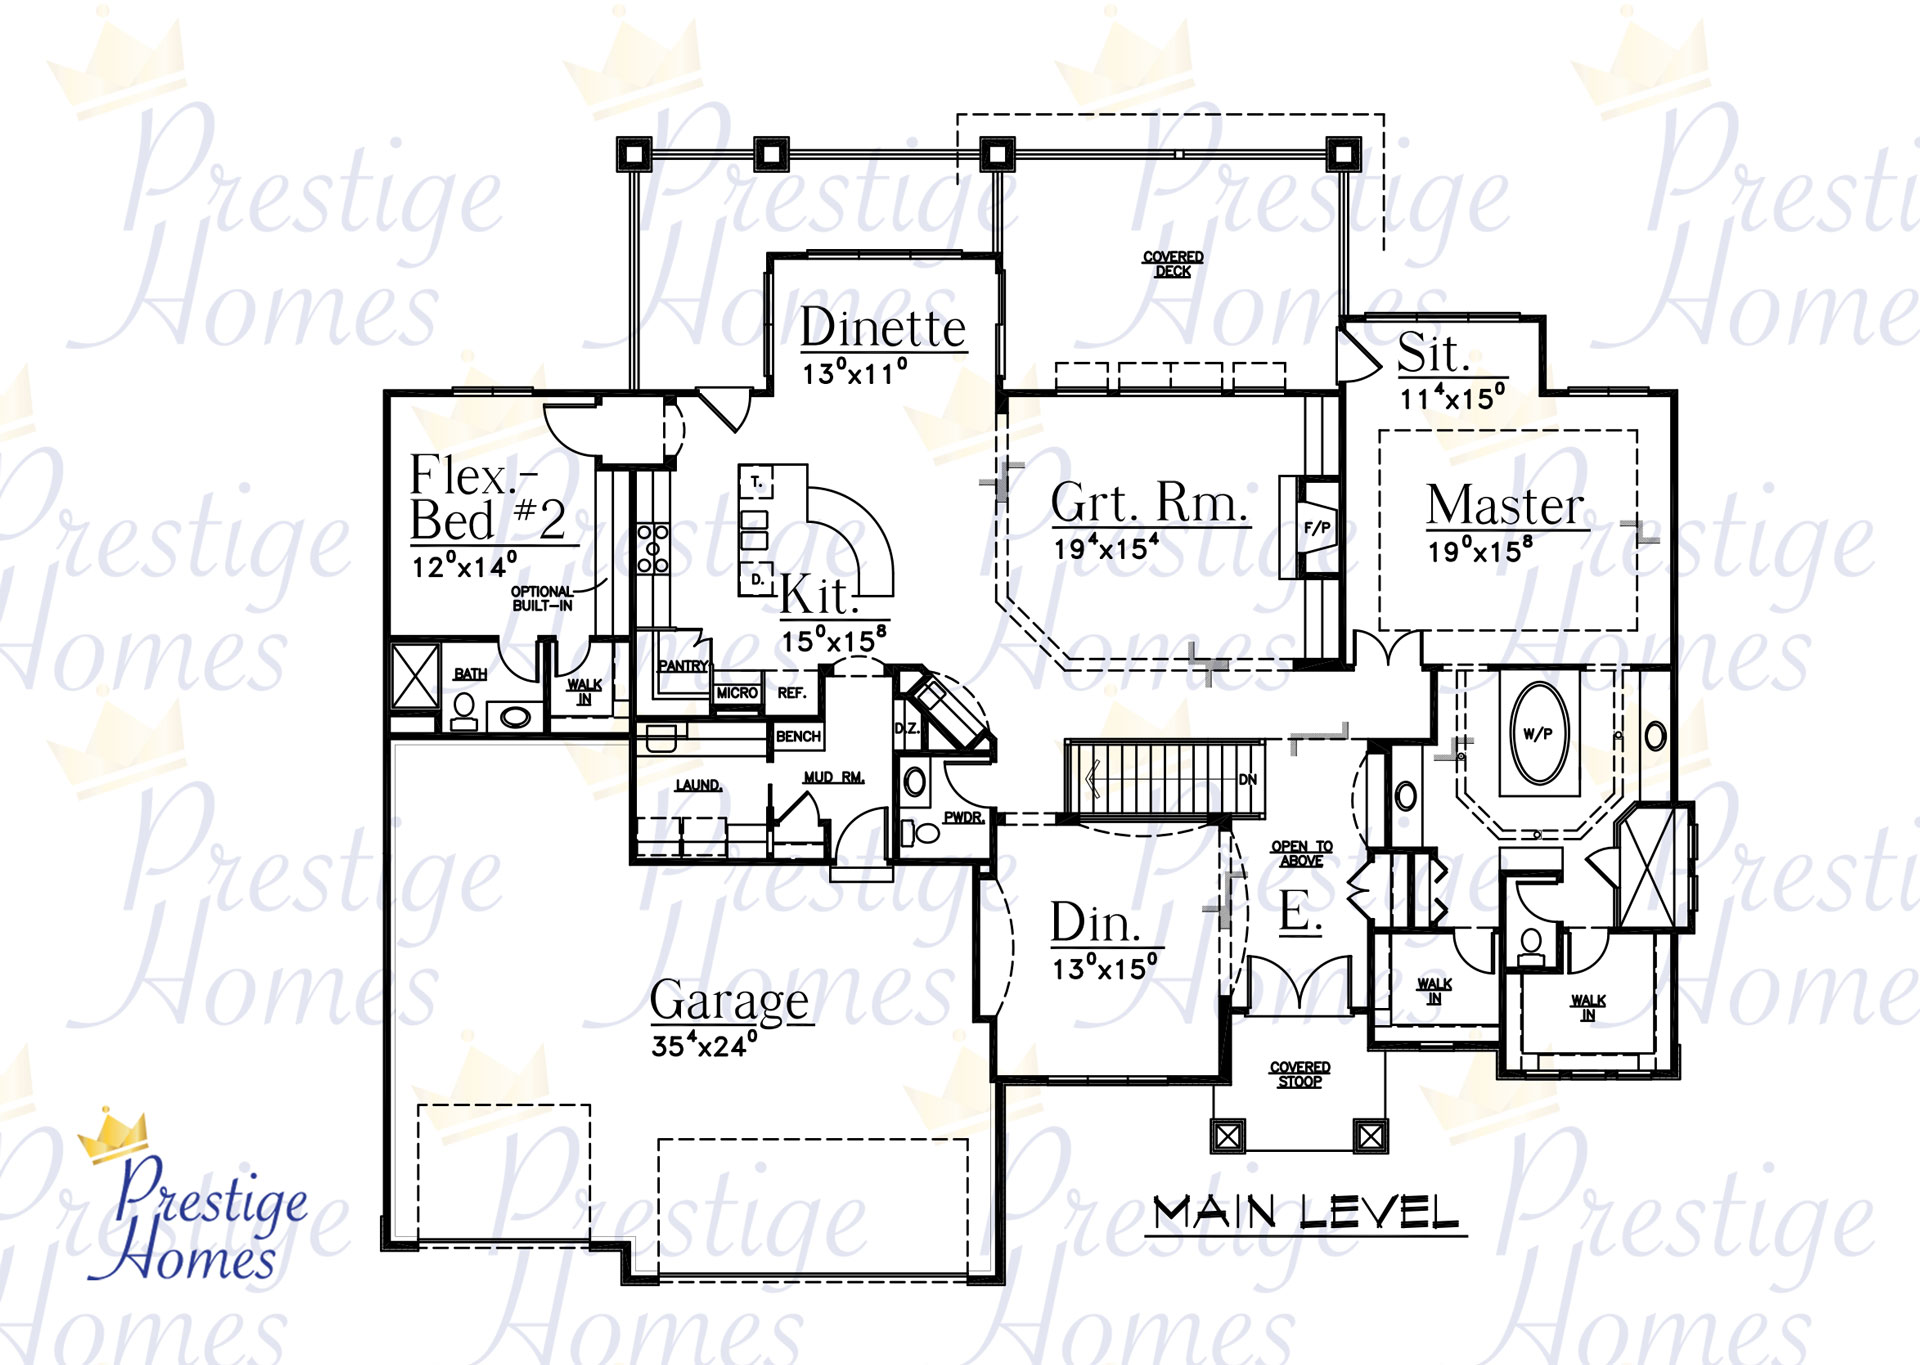 Prestige Homes - Floor Plan - Bella 4 Bedroom